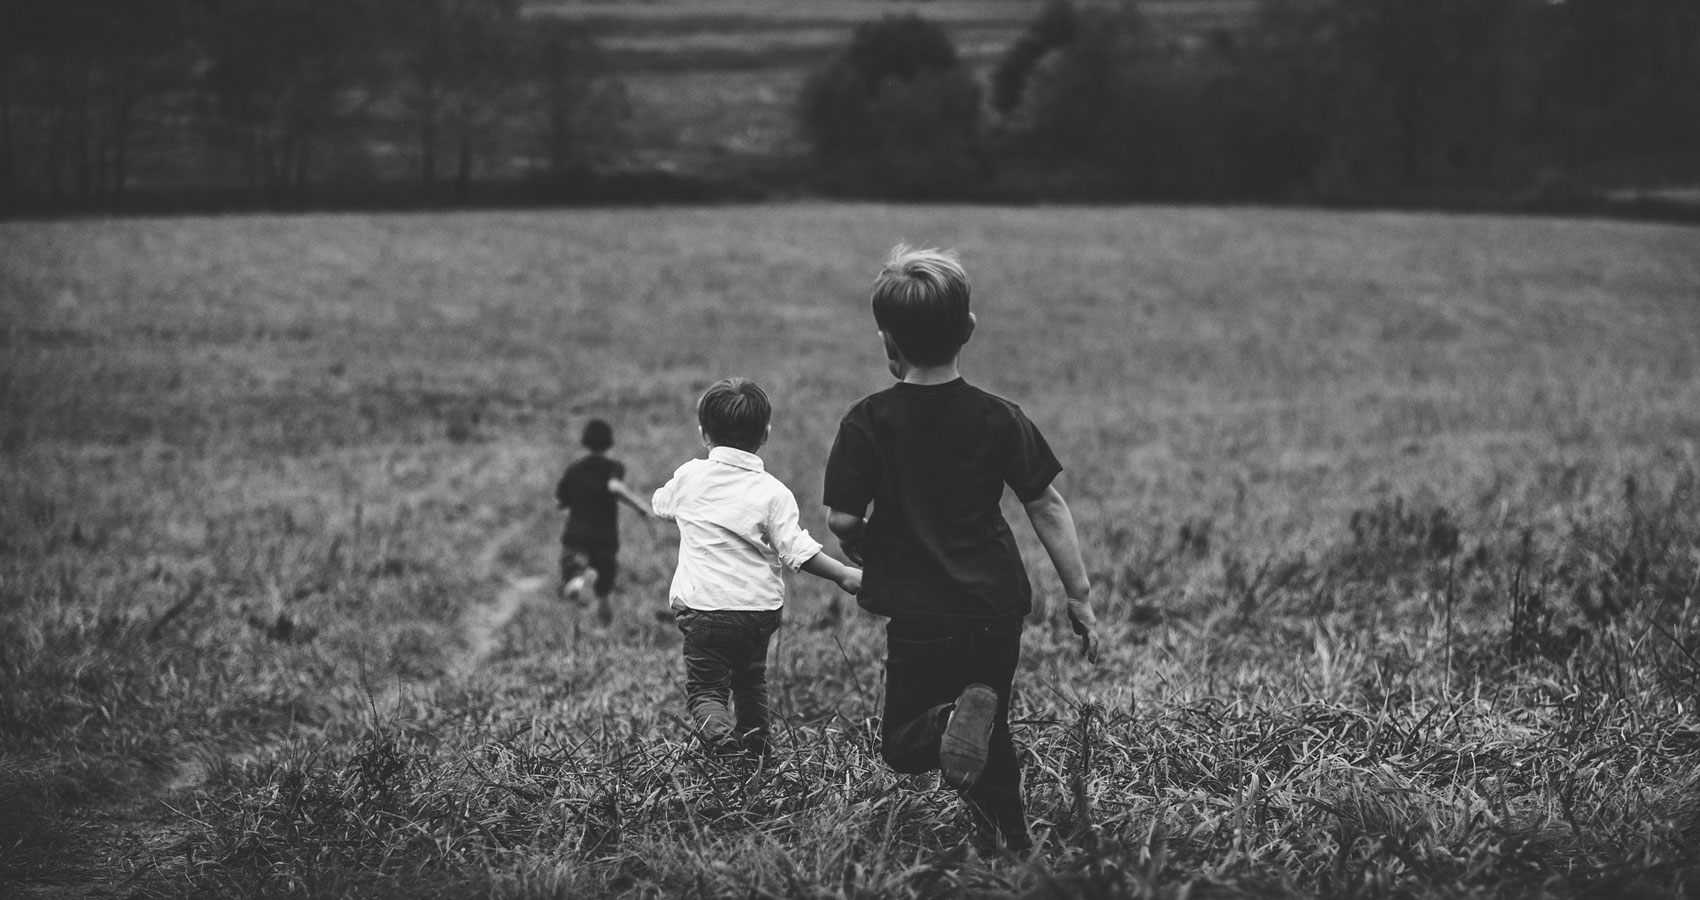 Childhood, a poem written by Welkin Siskin at Spillwords.com